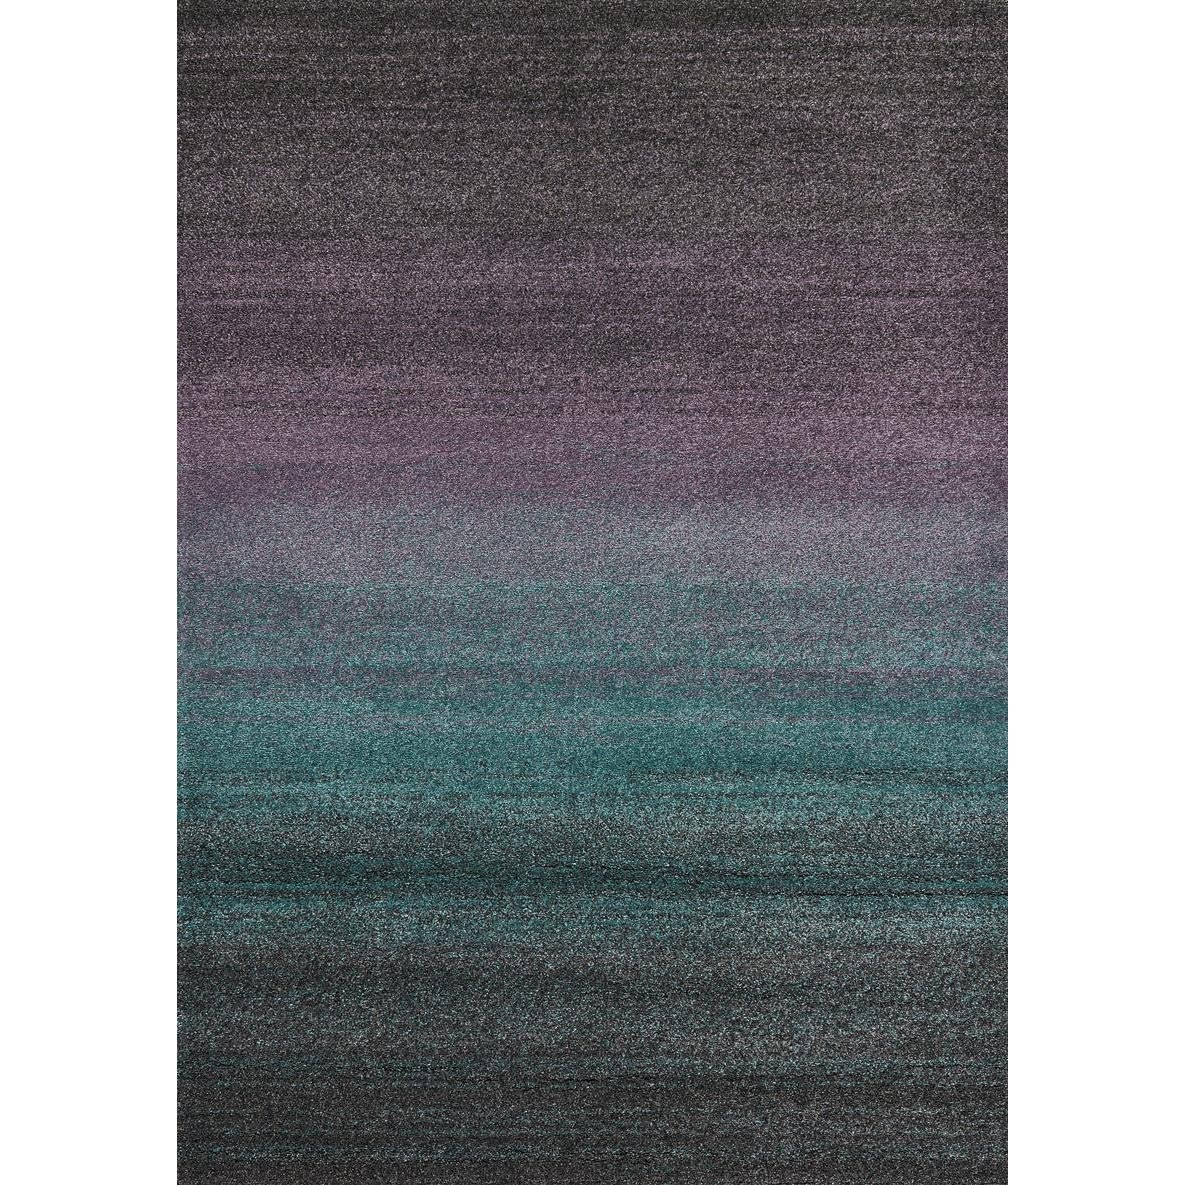 8 x 11 large purple u0026 gray area rug ashbury rc willey furniture store